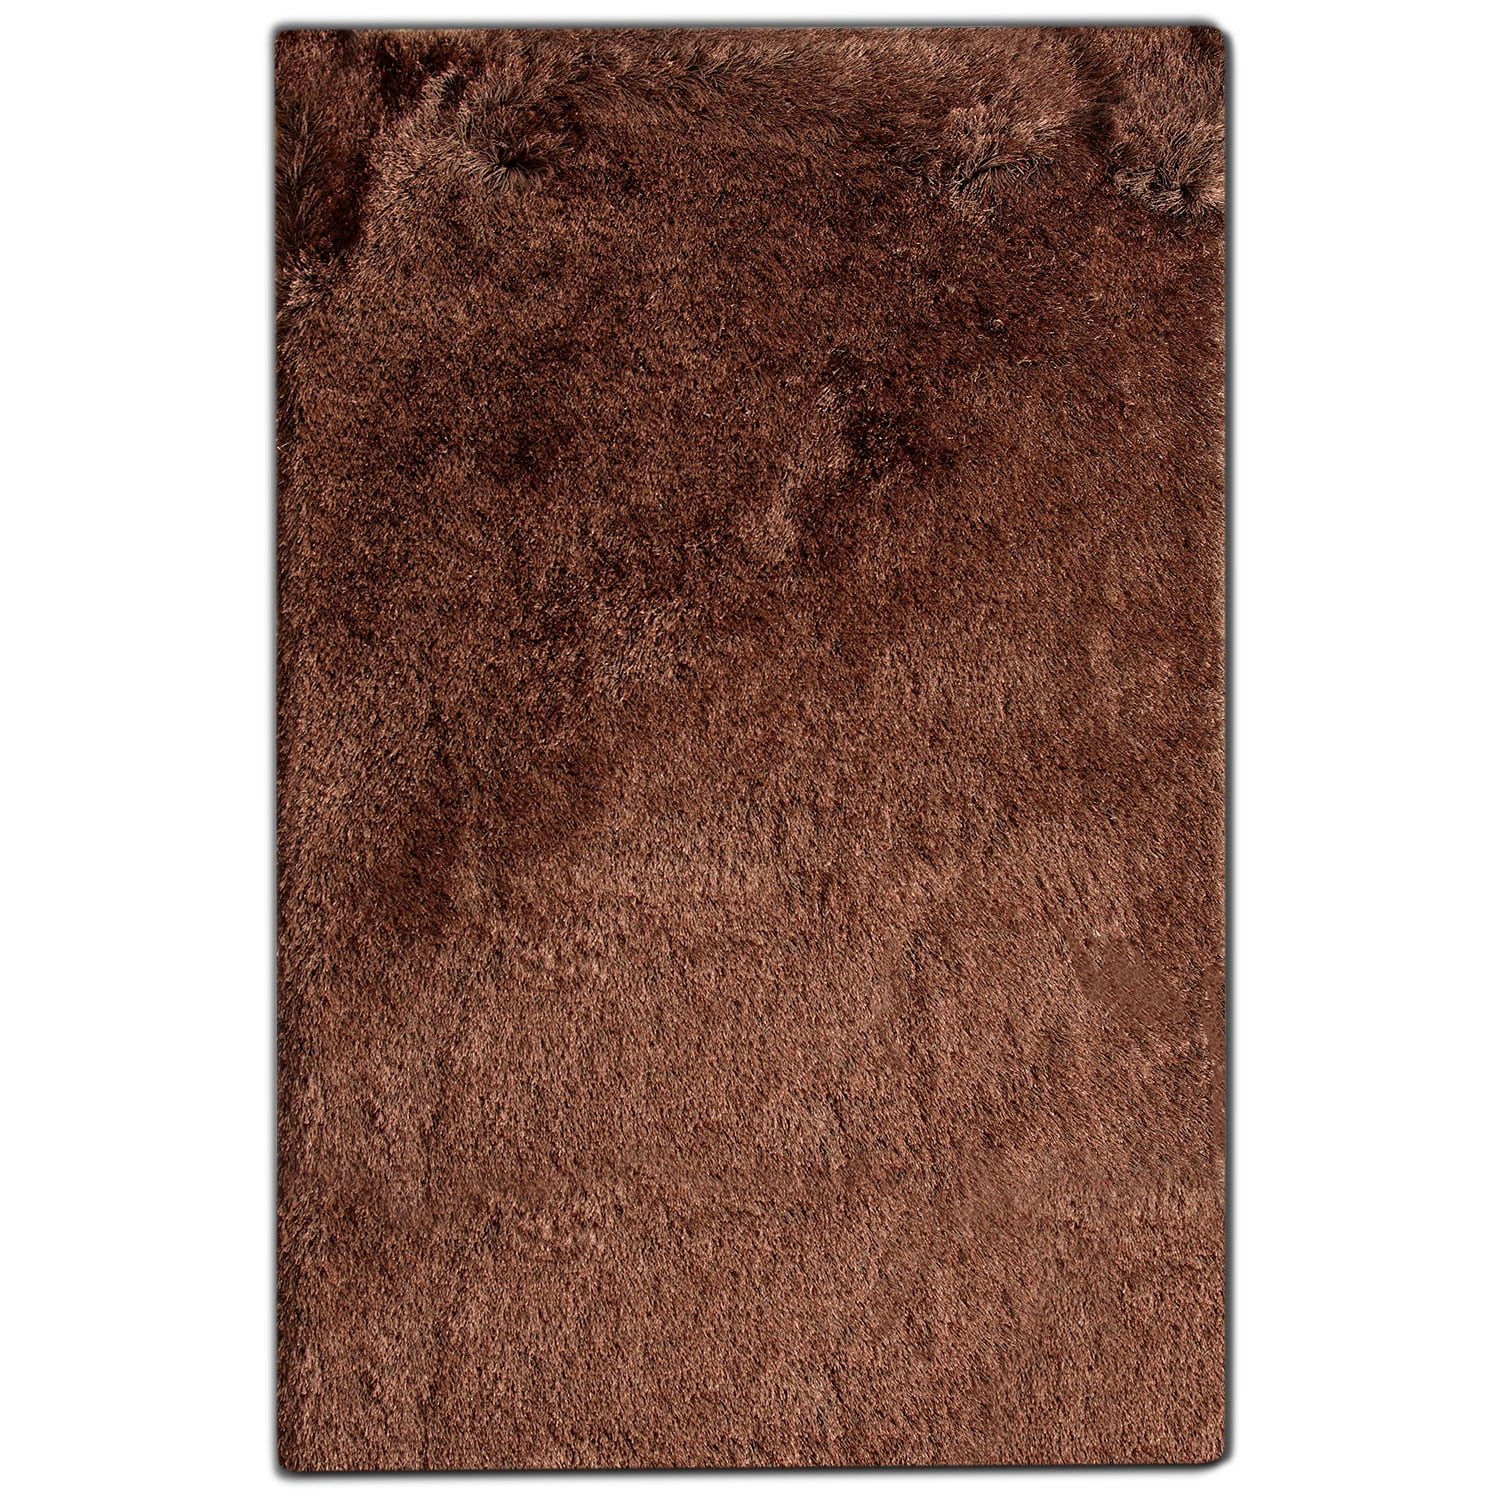 Luxe 5' x 8' Area Rug - Chocolate